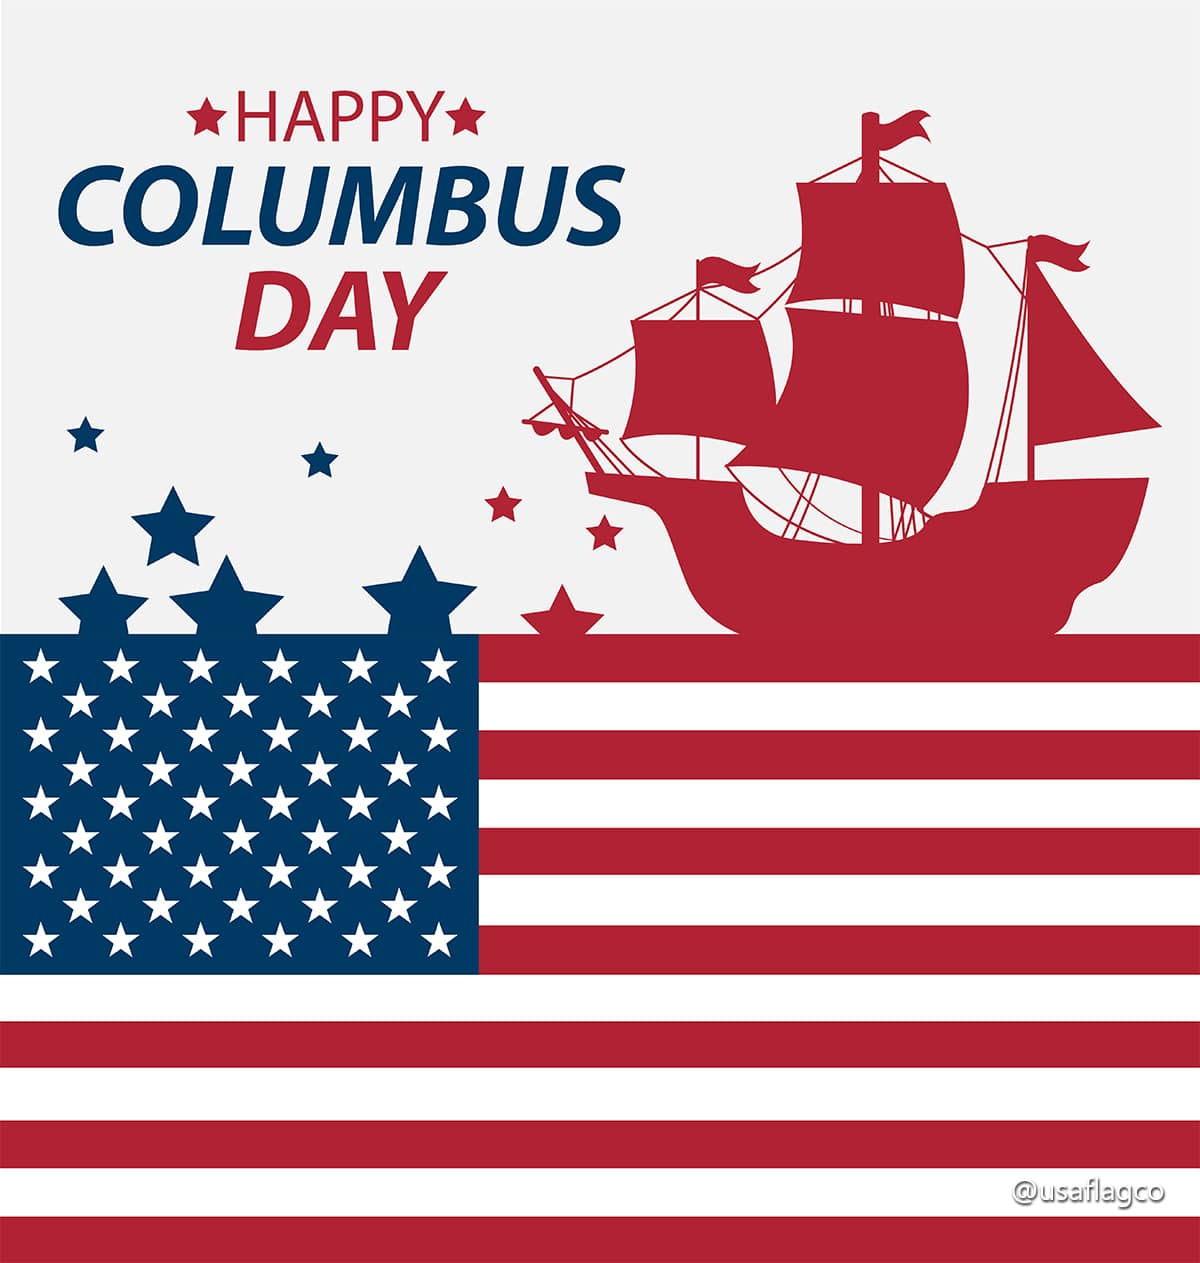 Following the light of the sun, we left the Old World. - Christopher Columbus | Happy Columbus Day!